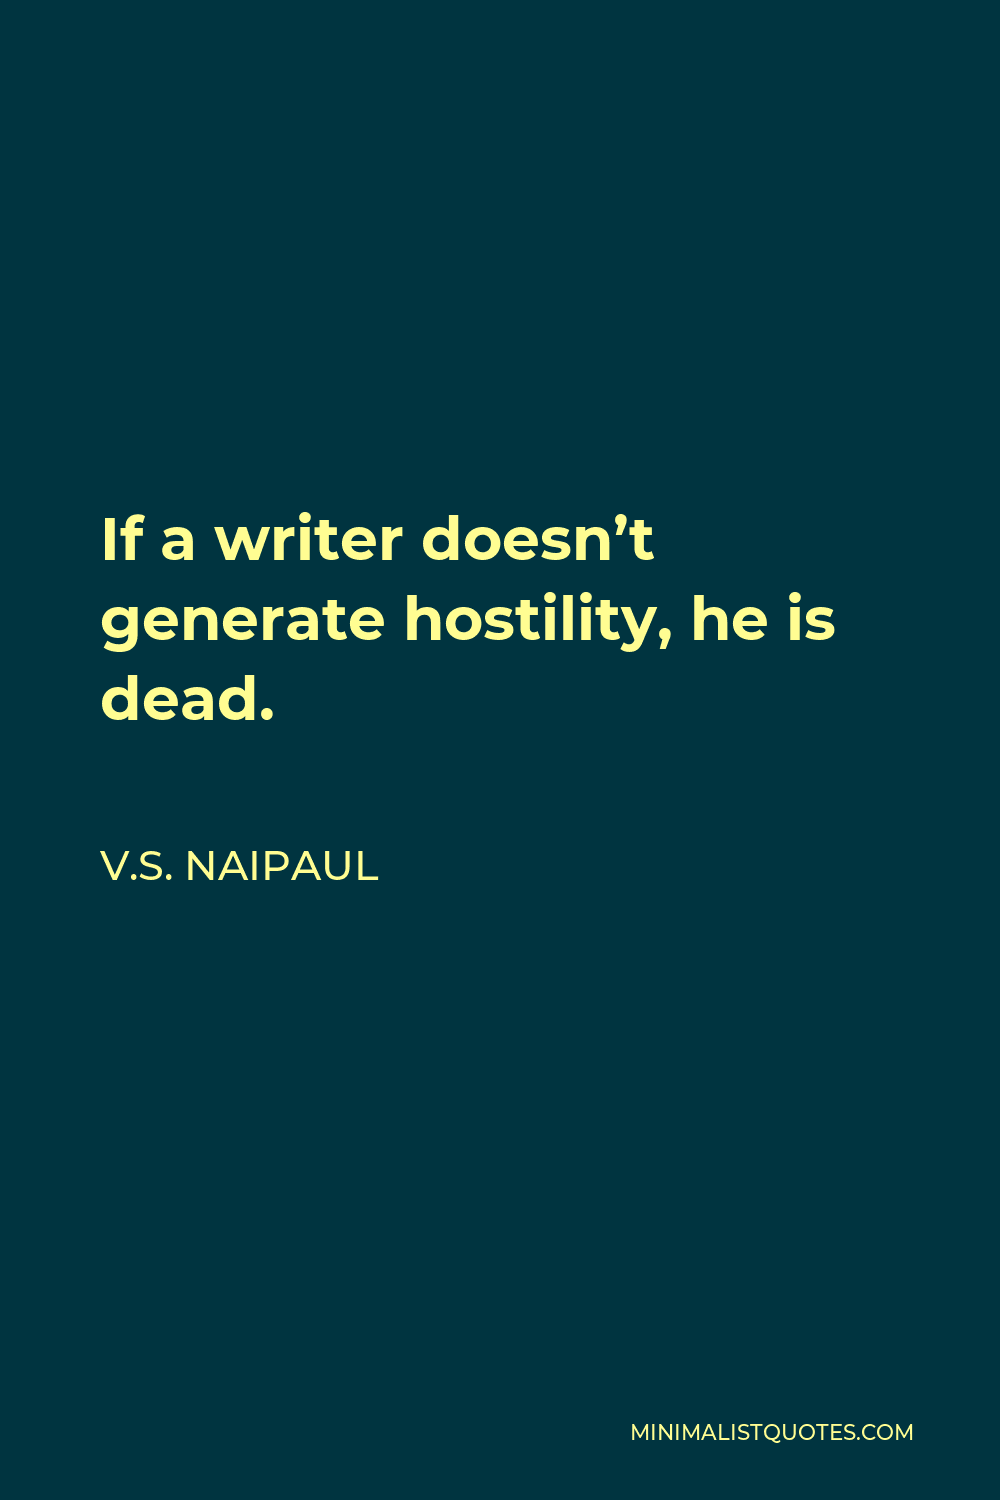 V.S. Naipaul Quote - If a writer doesn't generate hostility, he is dead.